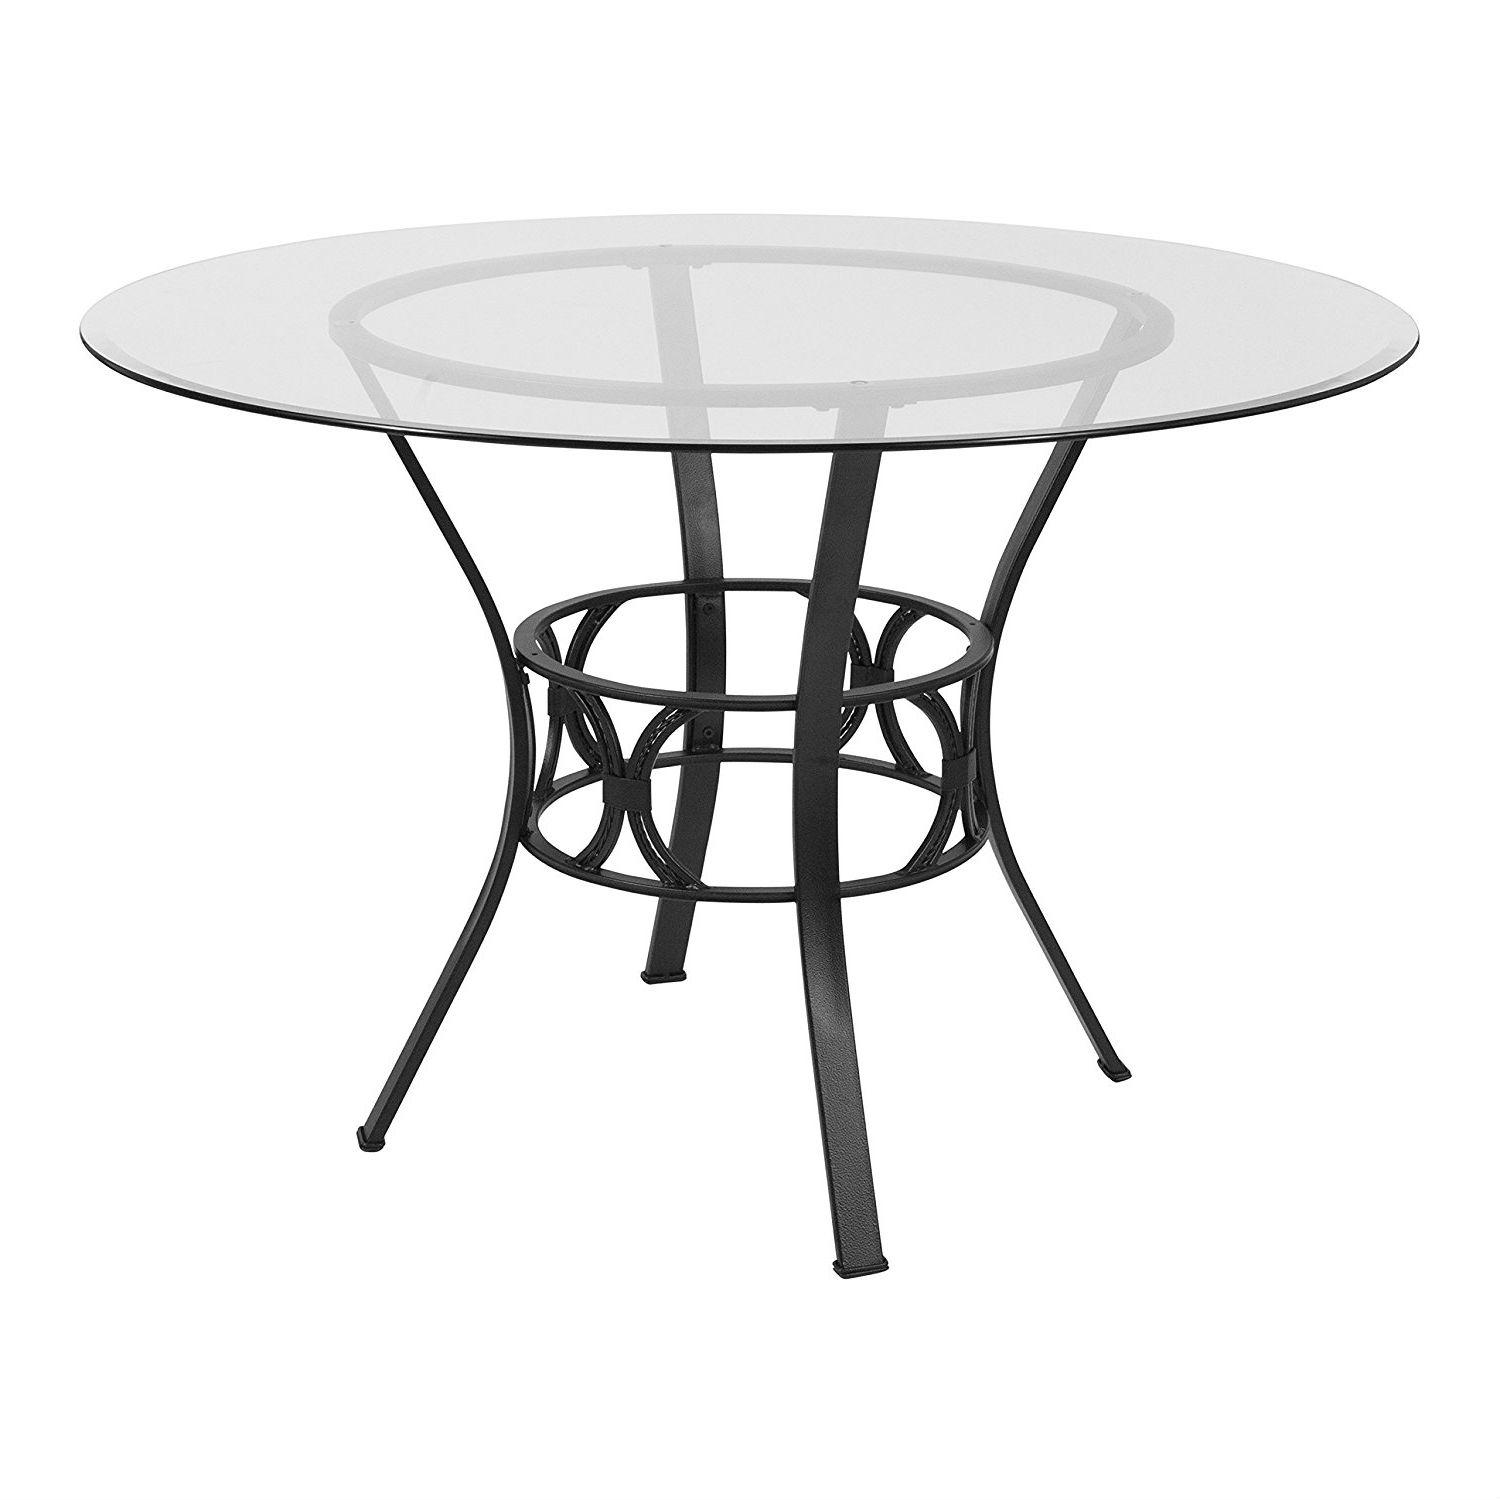 Contemporary 45 Inch Round Gl Dining Table With Black Metal Frame